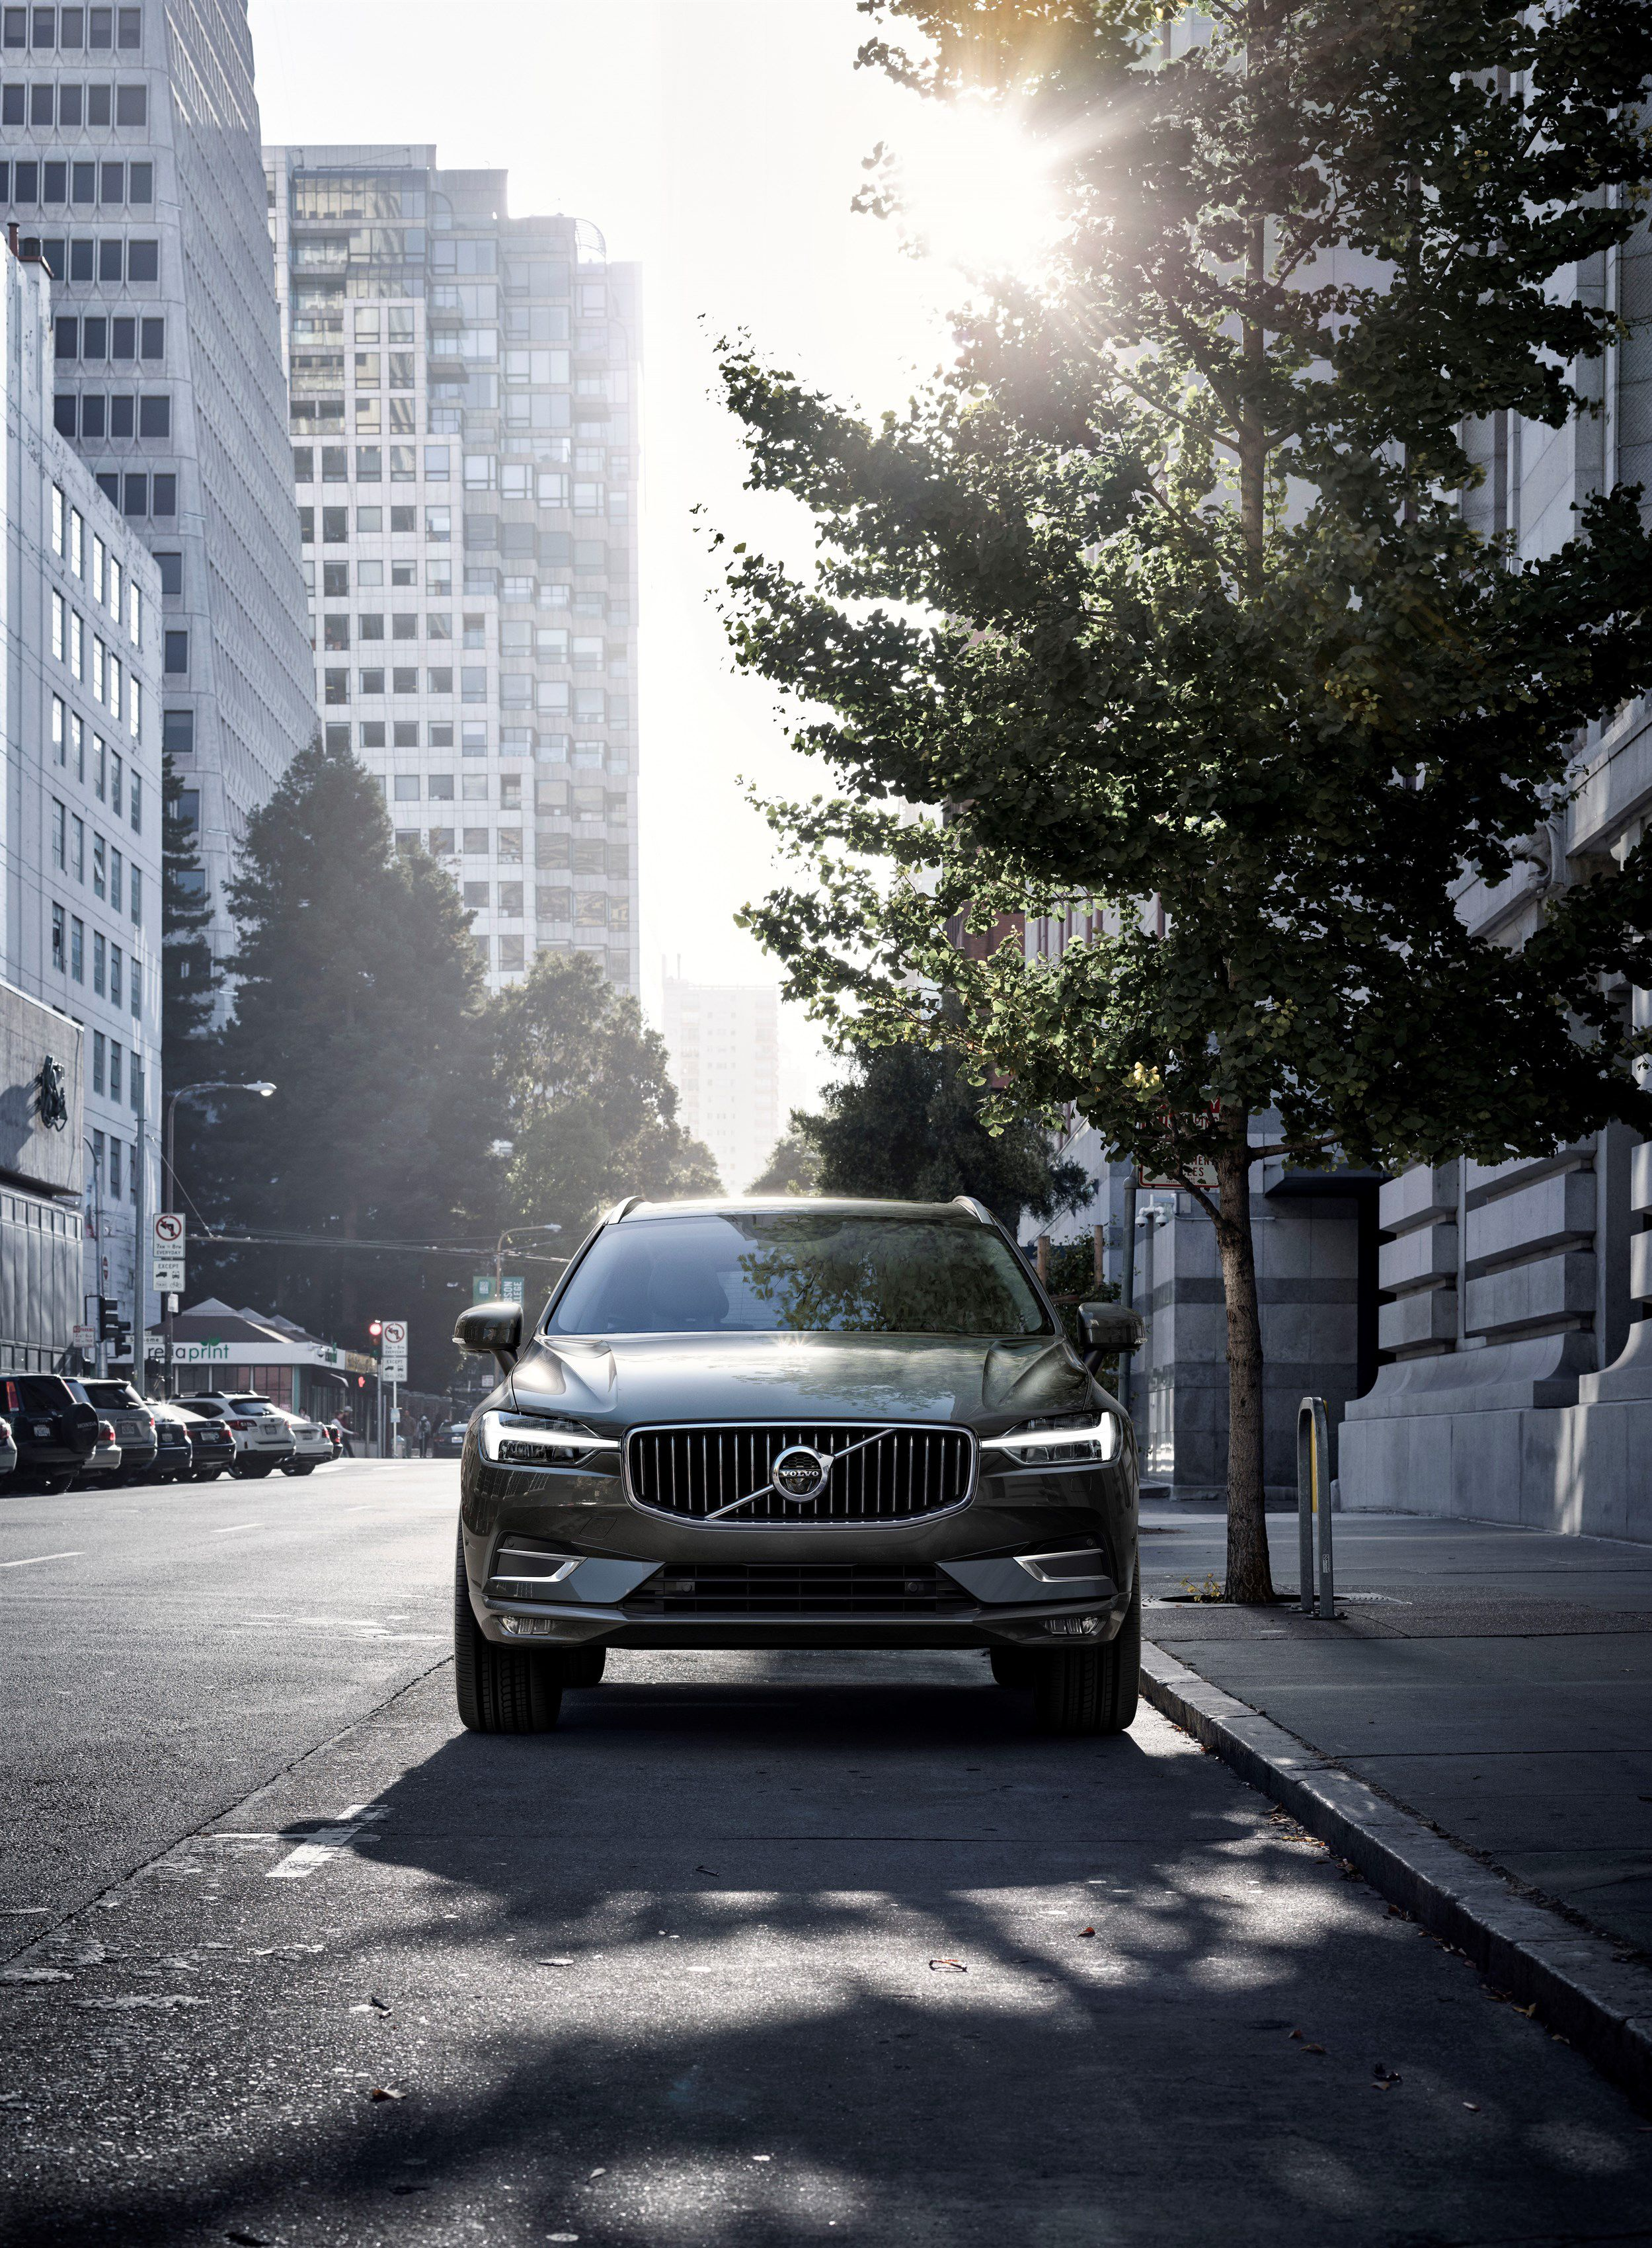 Volvo Xc60 The New Volvo Xc60 One Of The Safest Cars Ever Made Is Fully Loaded With New Technology Steer Assist Has Been Adde Volvo Xc60 Volvo Cars Volvo